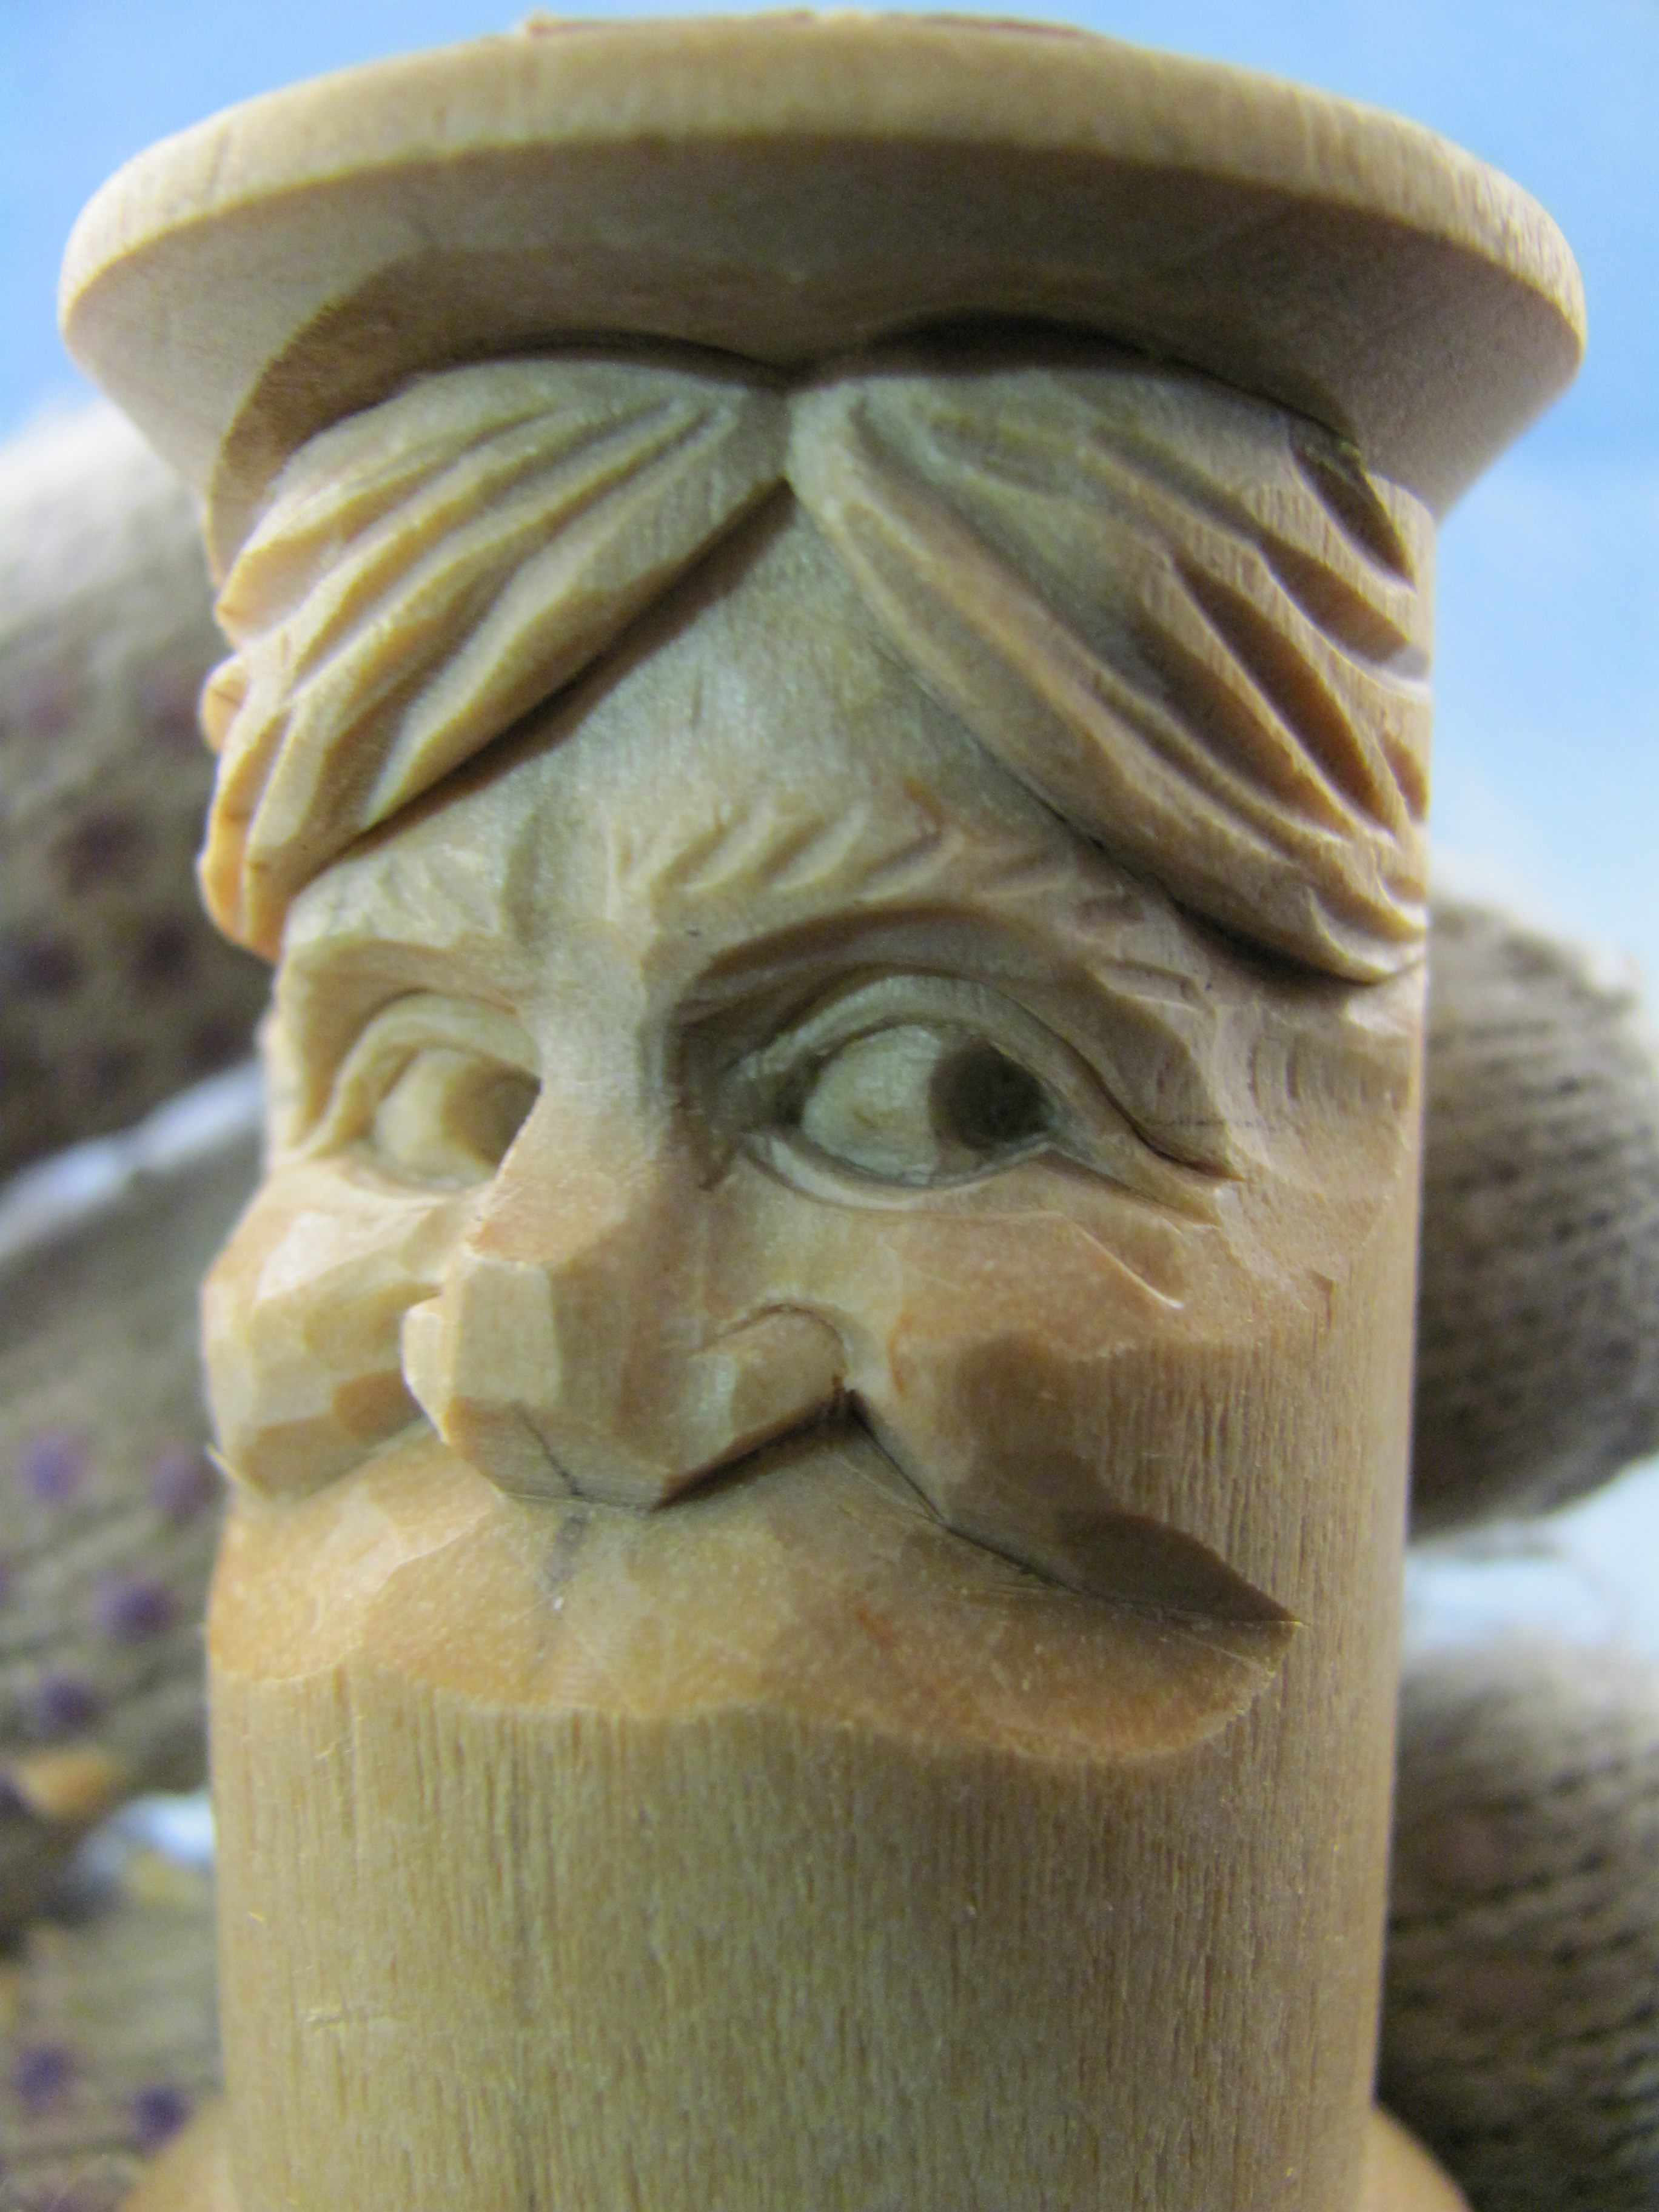 Carving a wooden thread spool carverdale